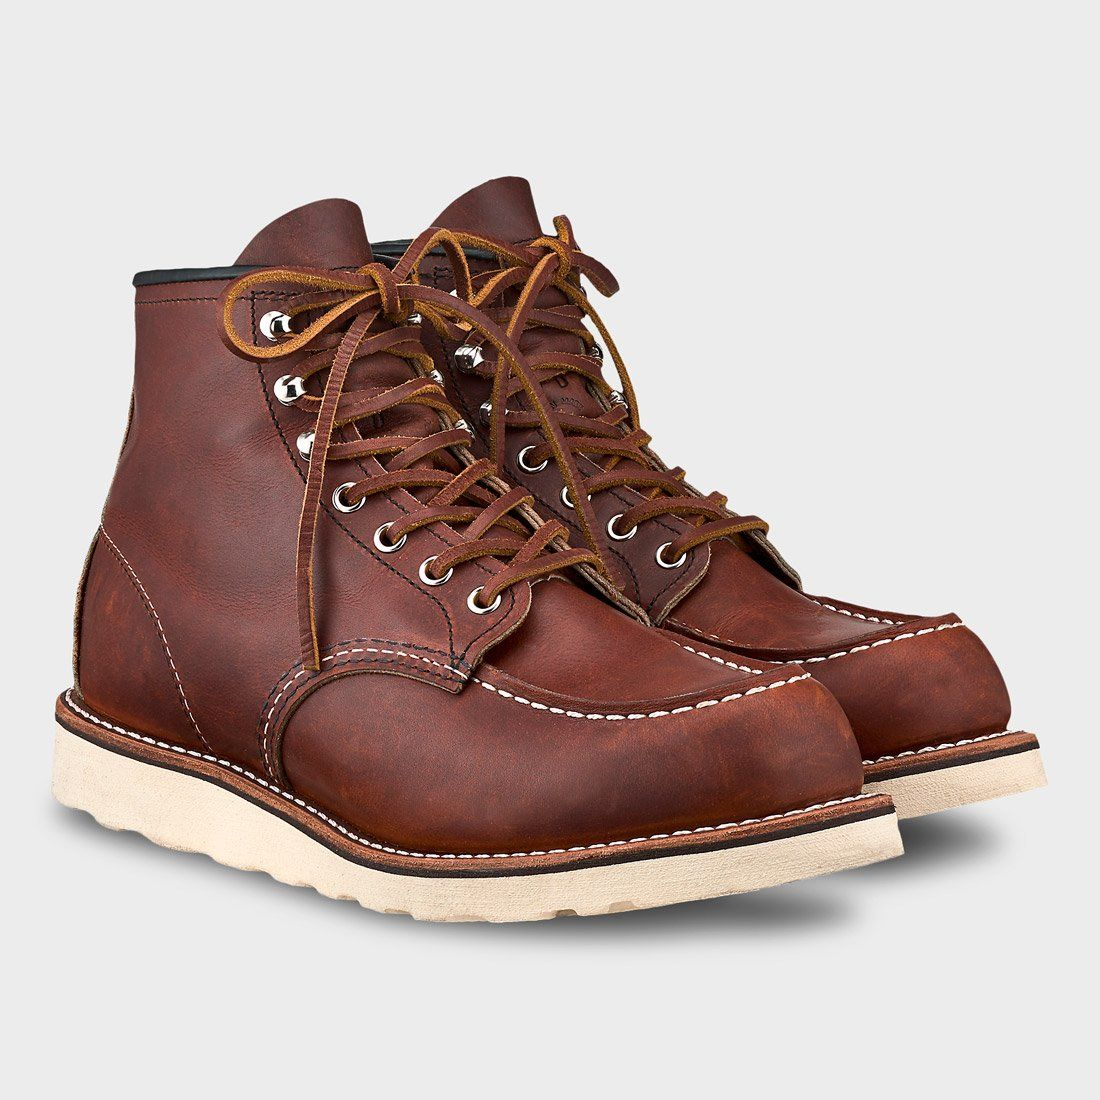 Red Wing Limited Edition 6-Inch Classic Moc Oro Harness